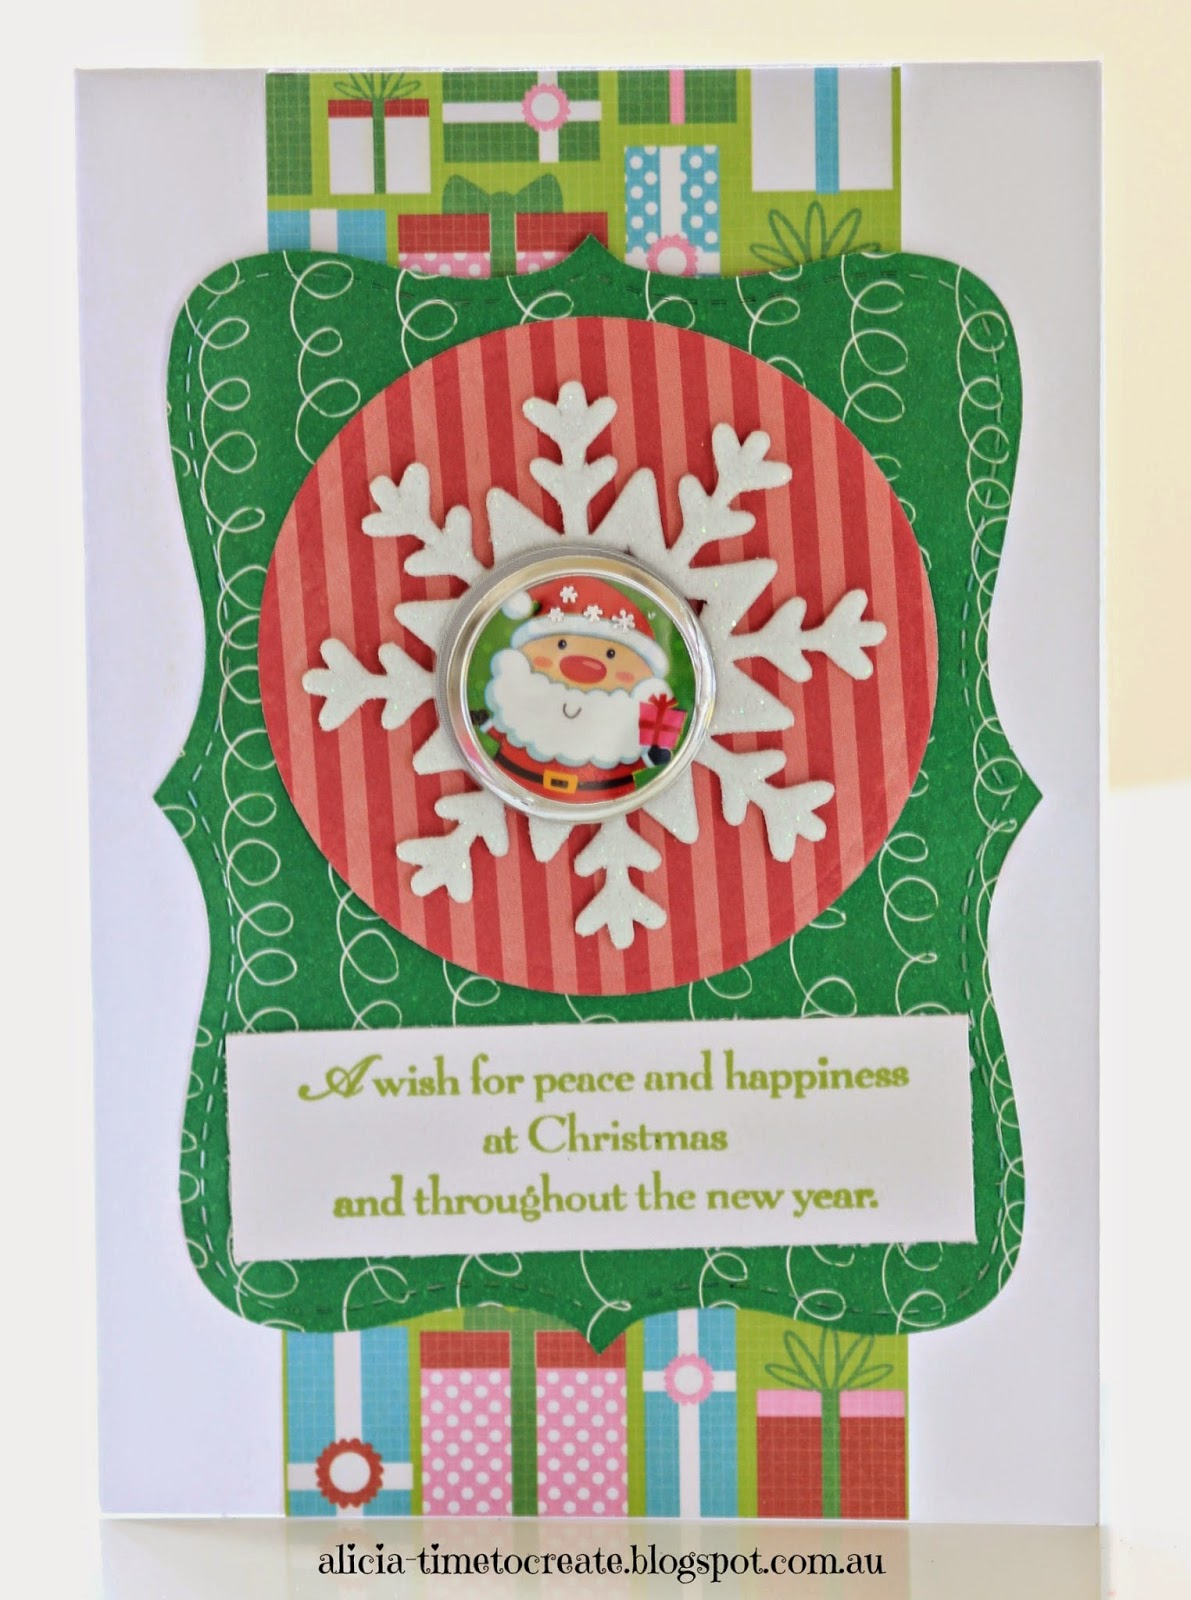 Time to Create ...: 5 Quick and Easy DIY Christmas Card Ideas